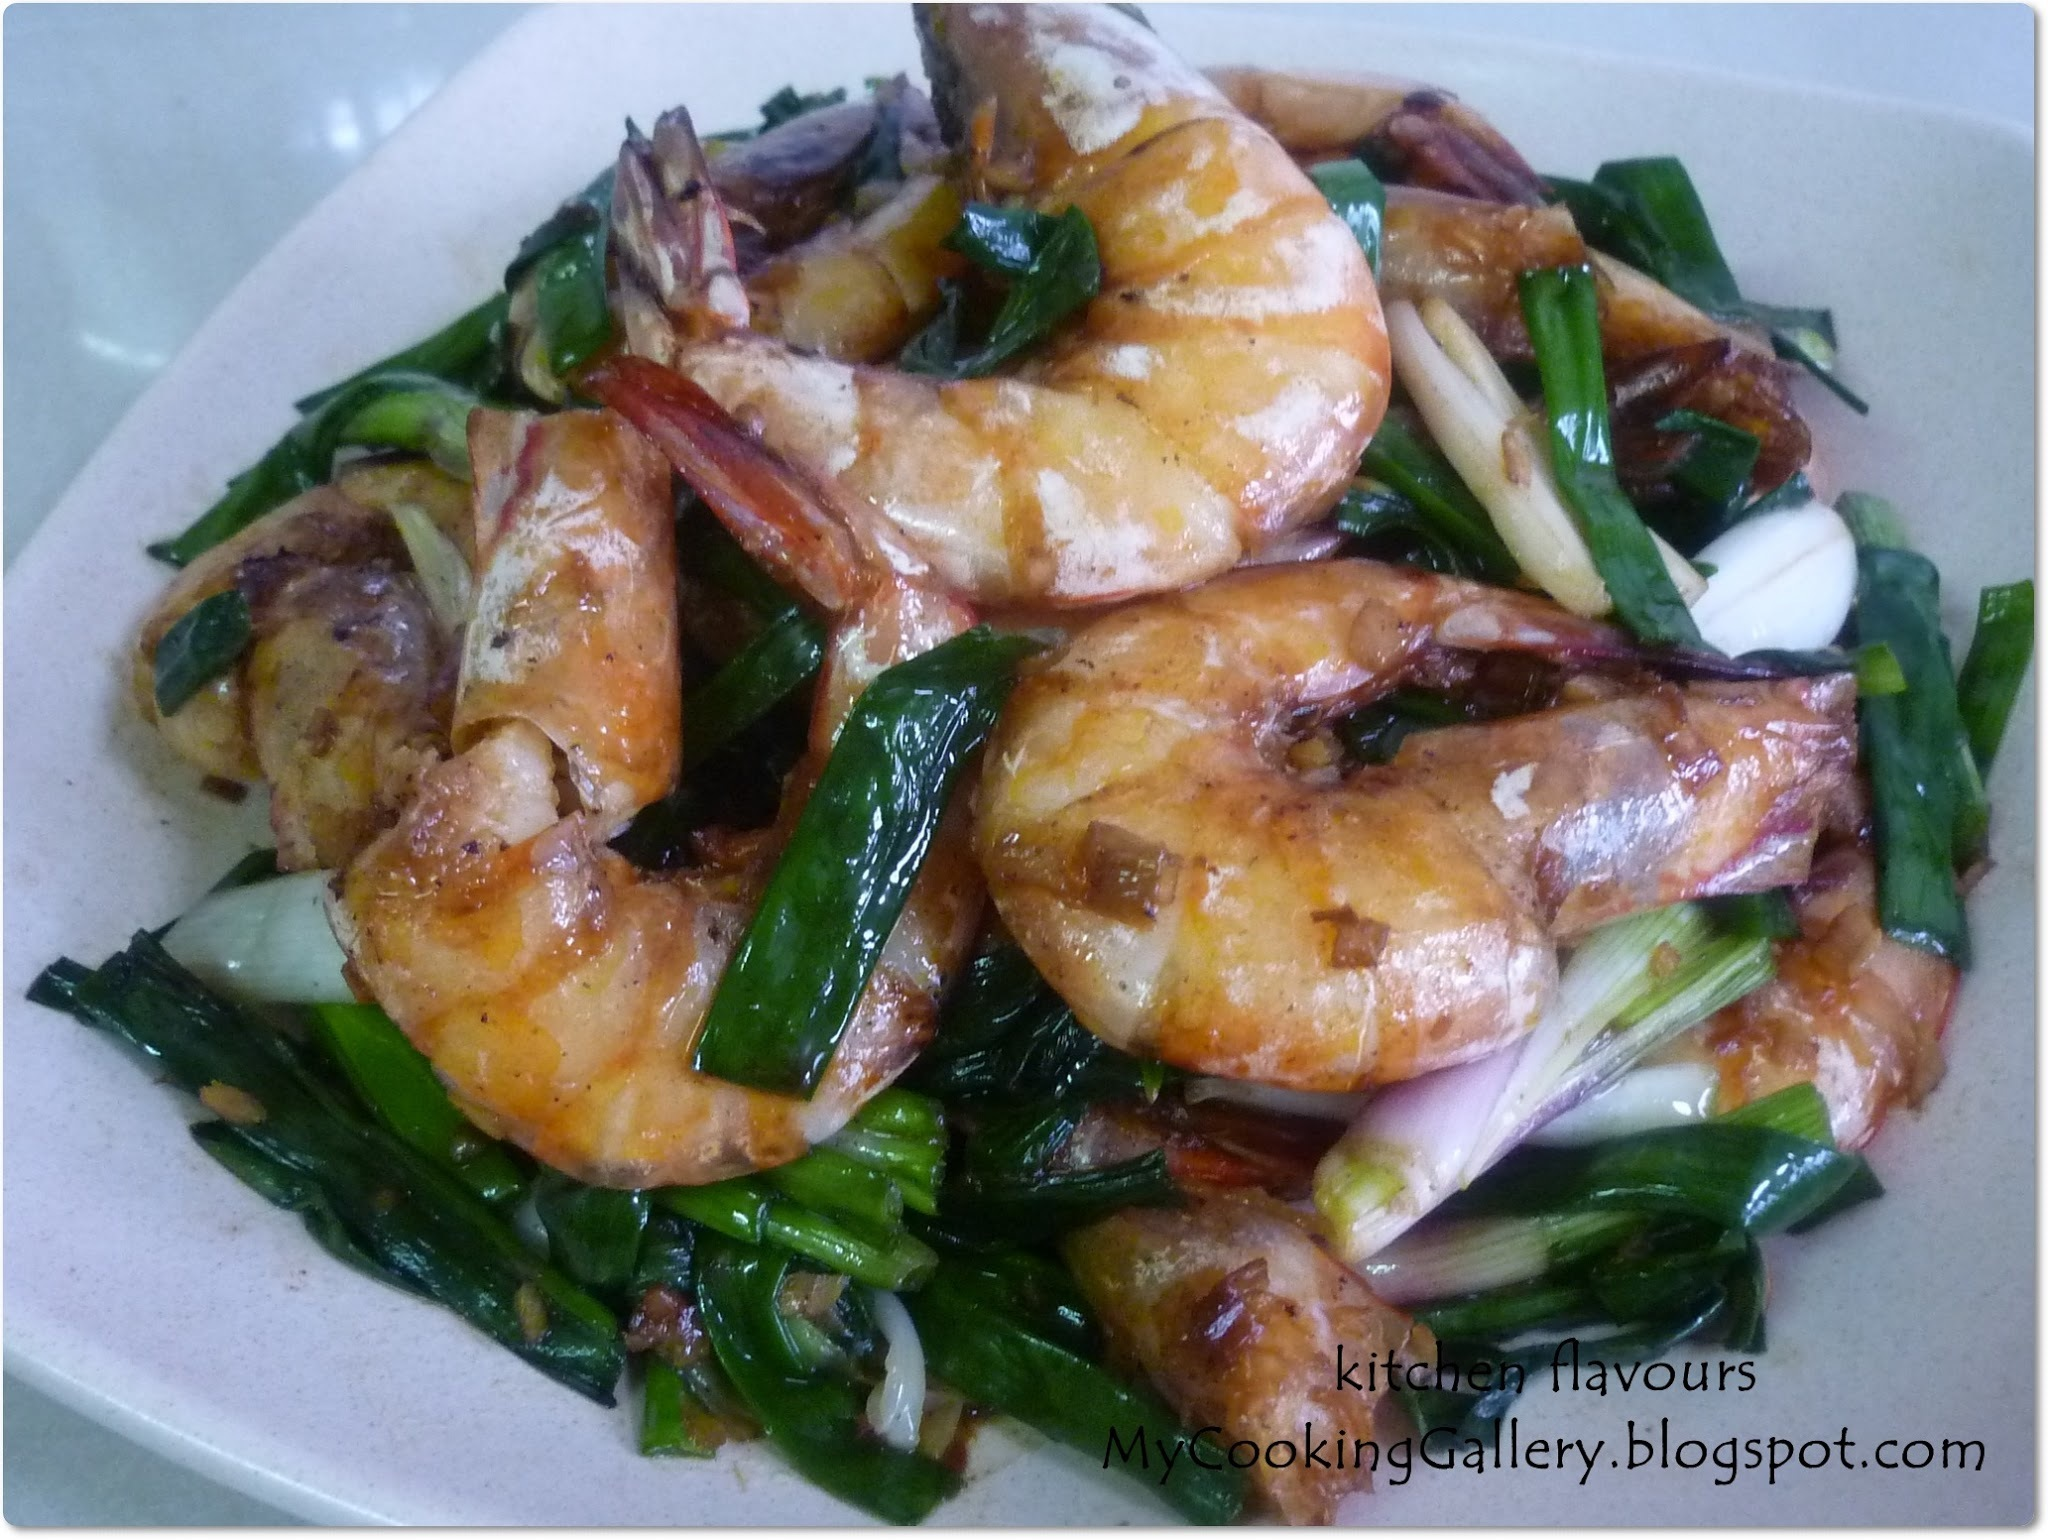 Oyster Sauce Prawns with Garden Fresh Spring Onions